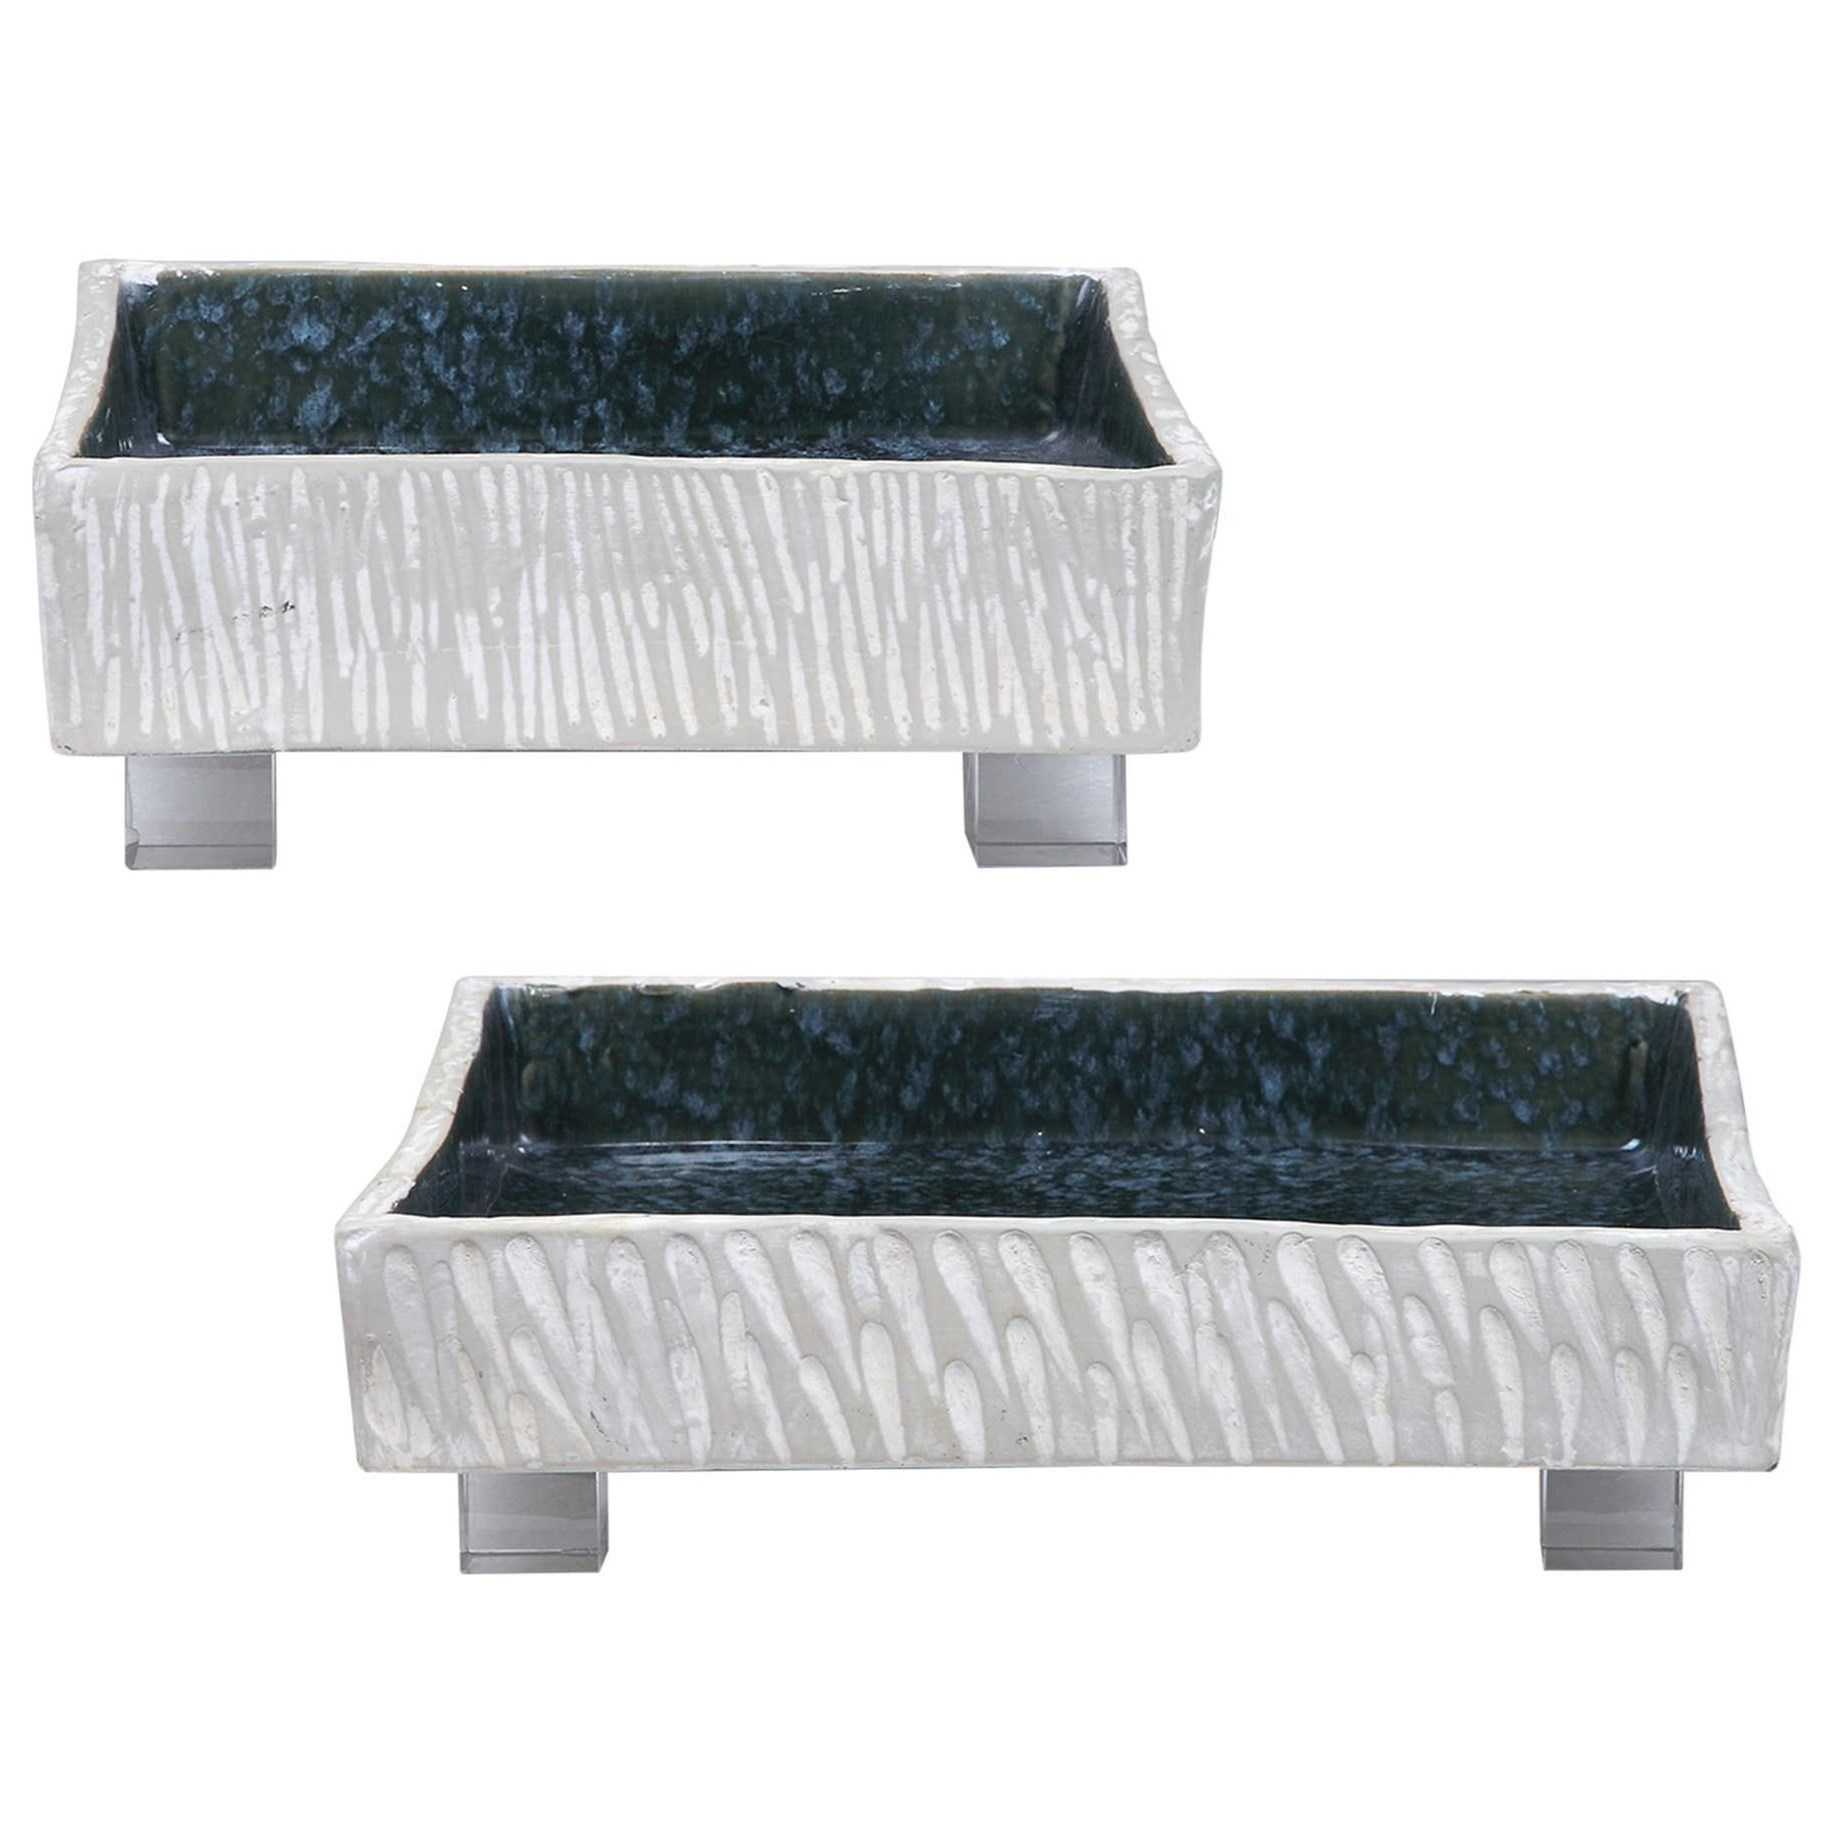 Accessories Ambretta Square Bowls, S/2 by Uttermost at Mueller Furniture